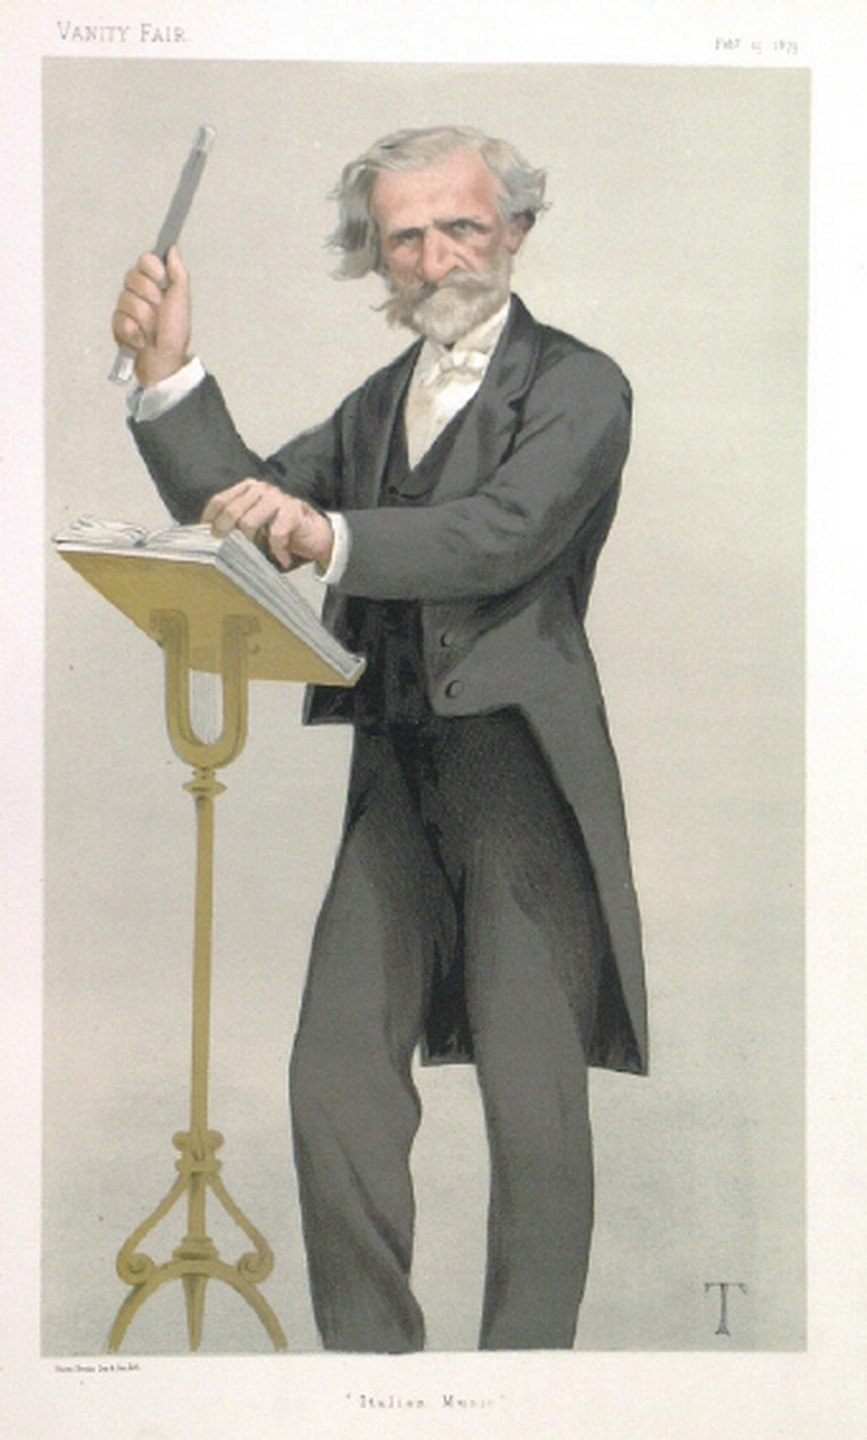 Giuseppe Verdi 1879 Vanity Fair illustration by Th%C3%A9obald Chartran